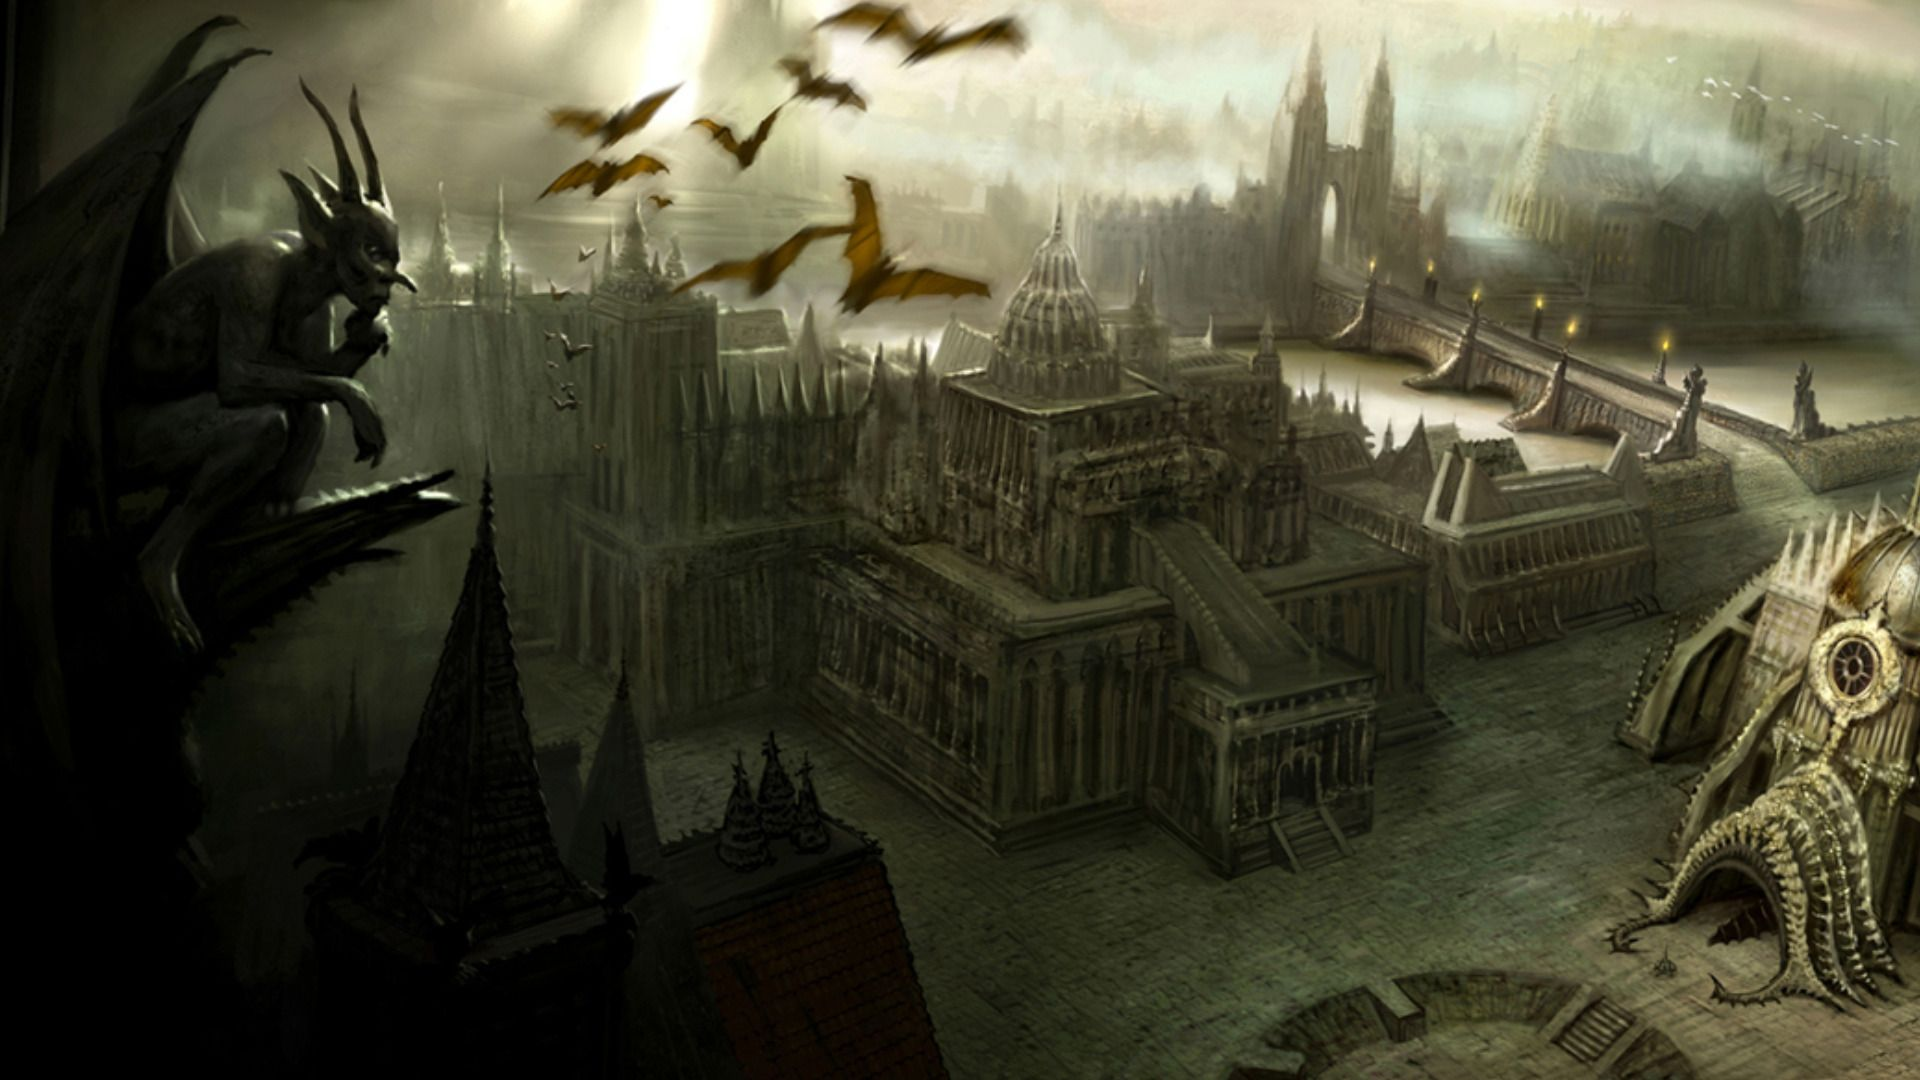 FANTASY CASTLES | ... Coders | Wallpaper Abyss Everything Castles Fantasy Castle 269858